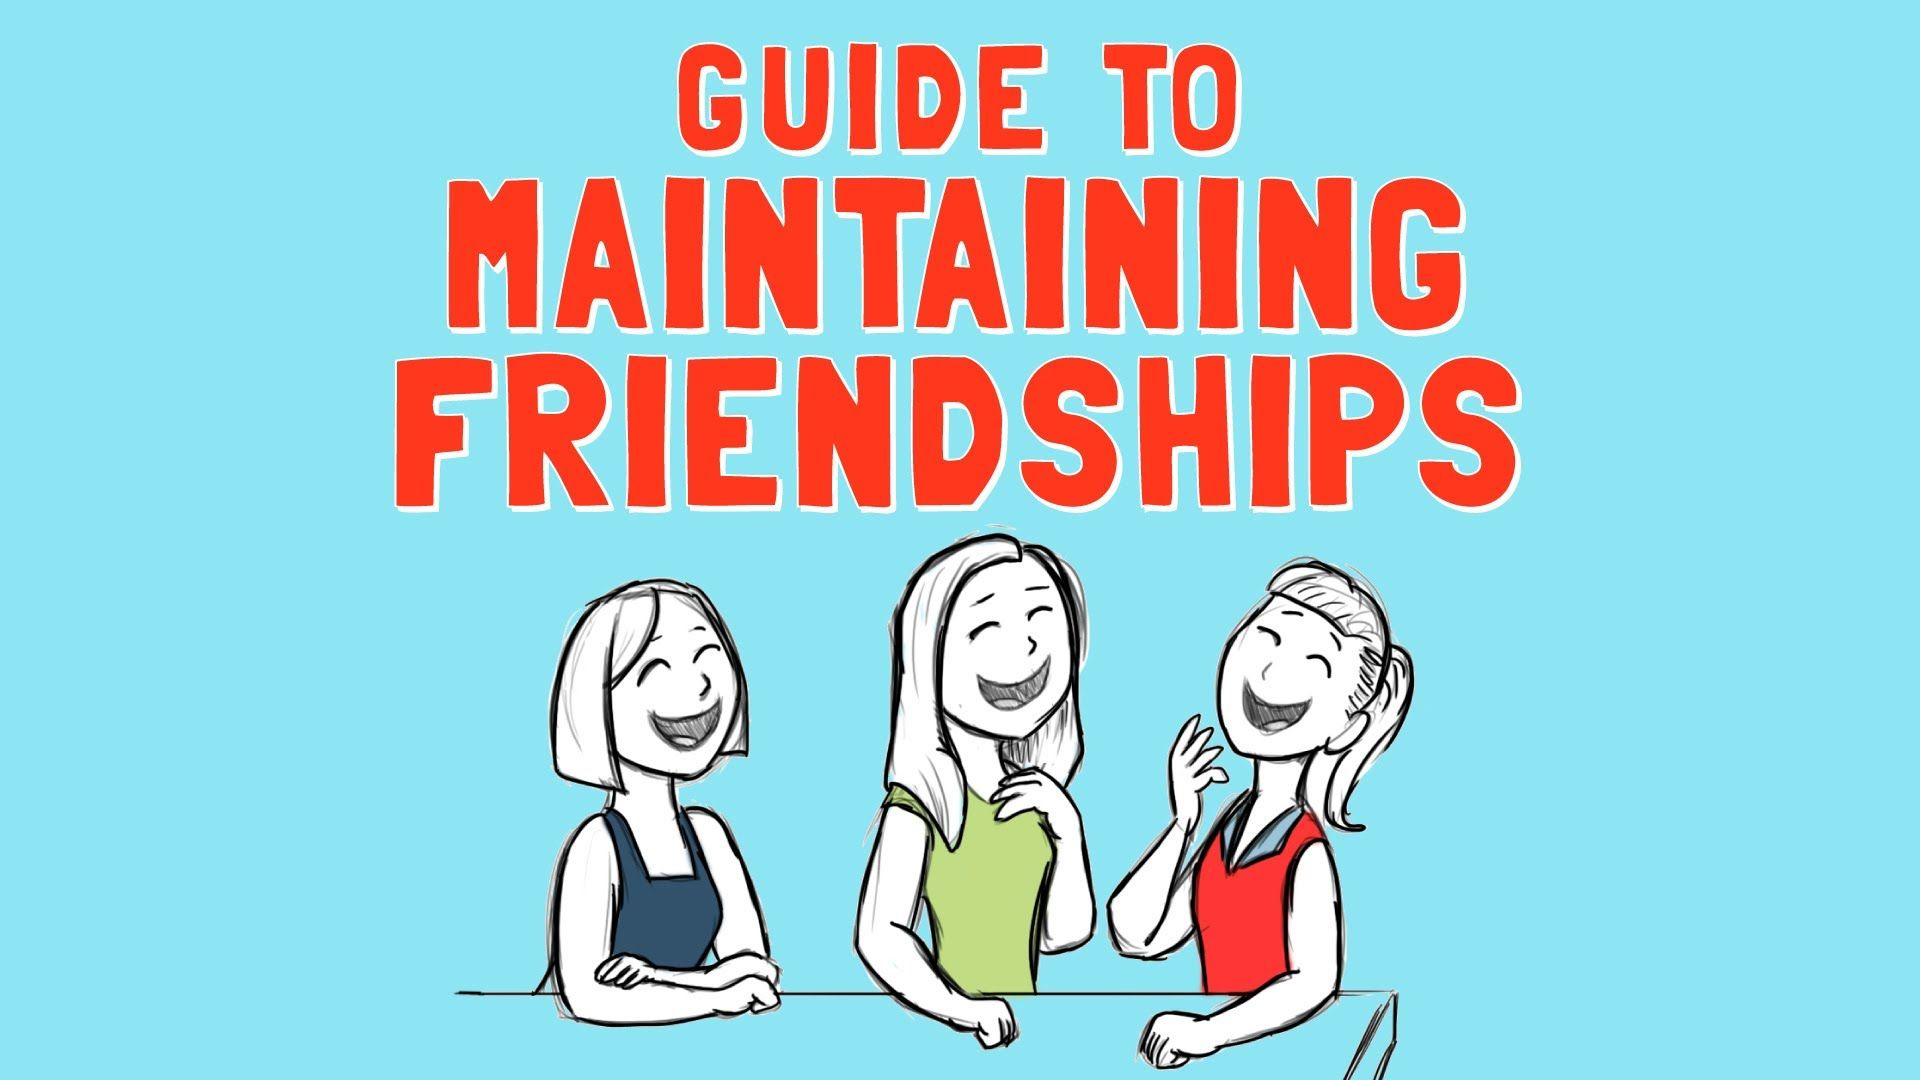 Guide To Maintaining Friendships These Steps Can Work For Young Children With The Help Of